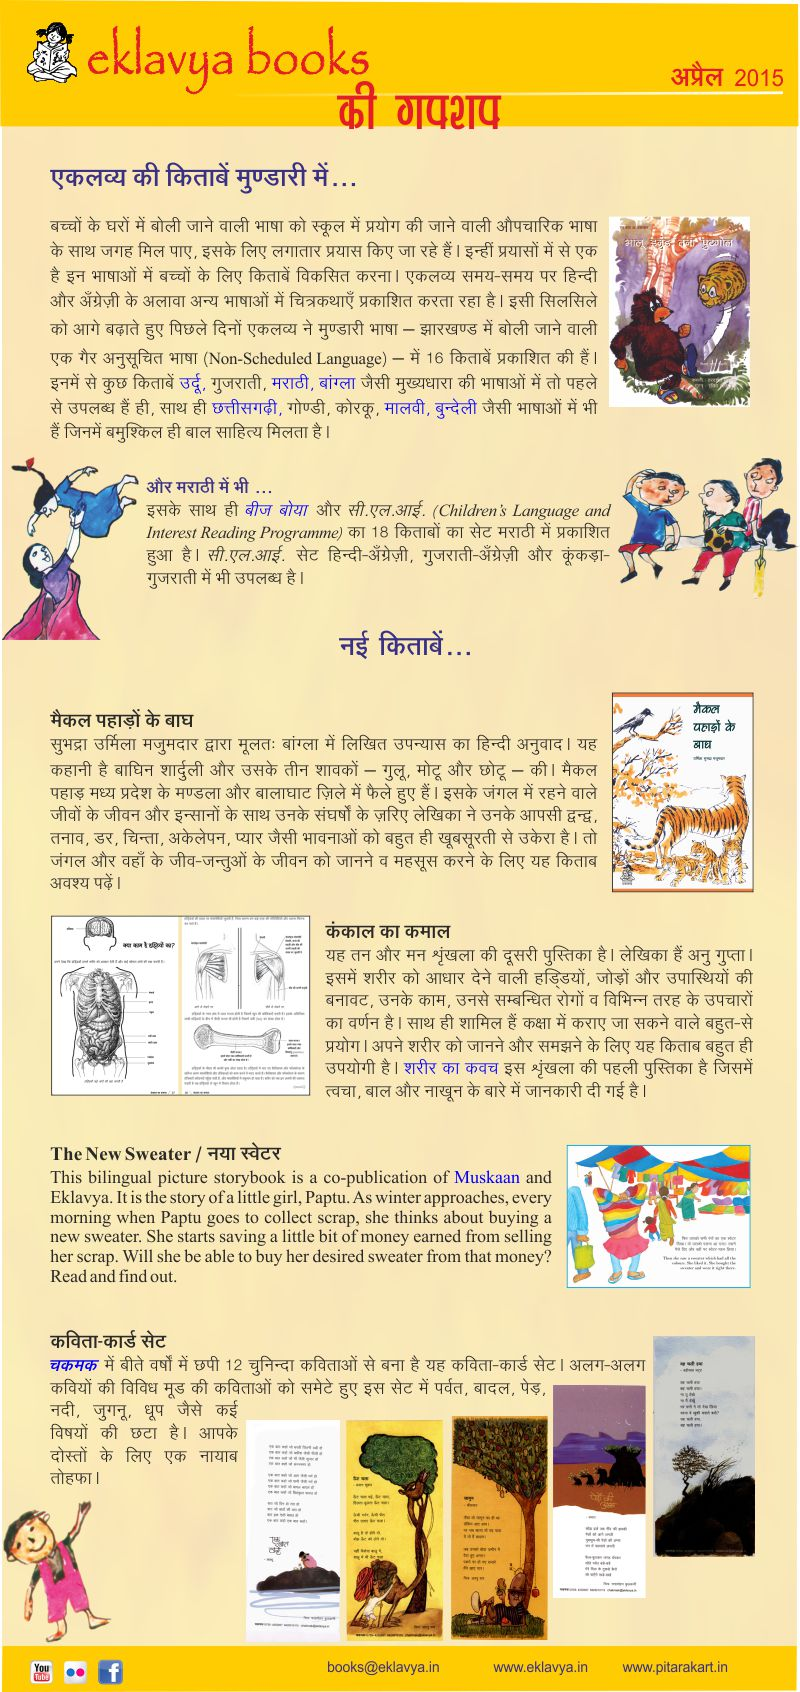 eklavyabooks ki gupshup - April 2015. Enable image for viewing newsletter